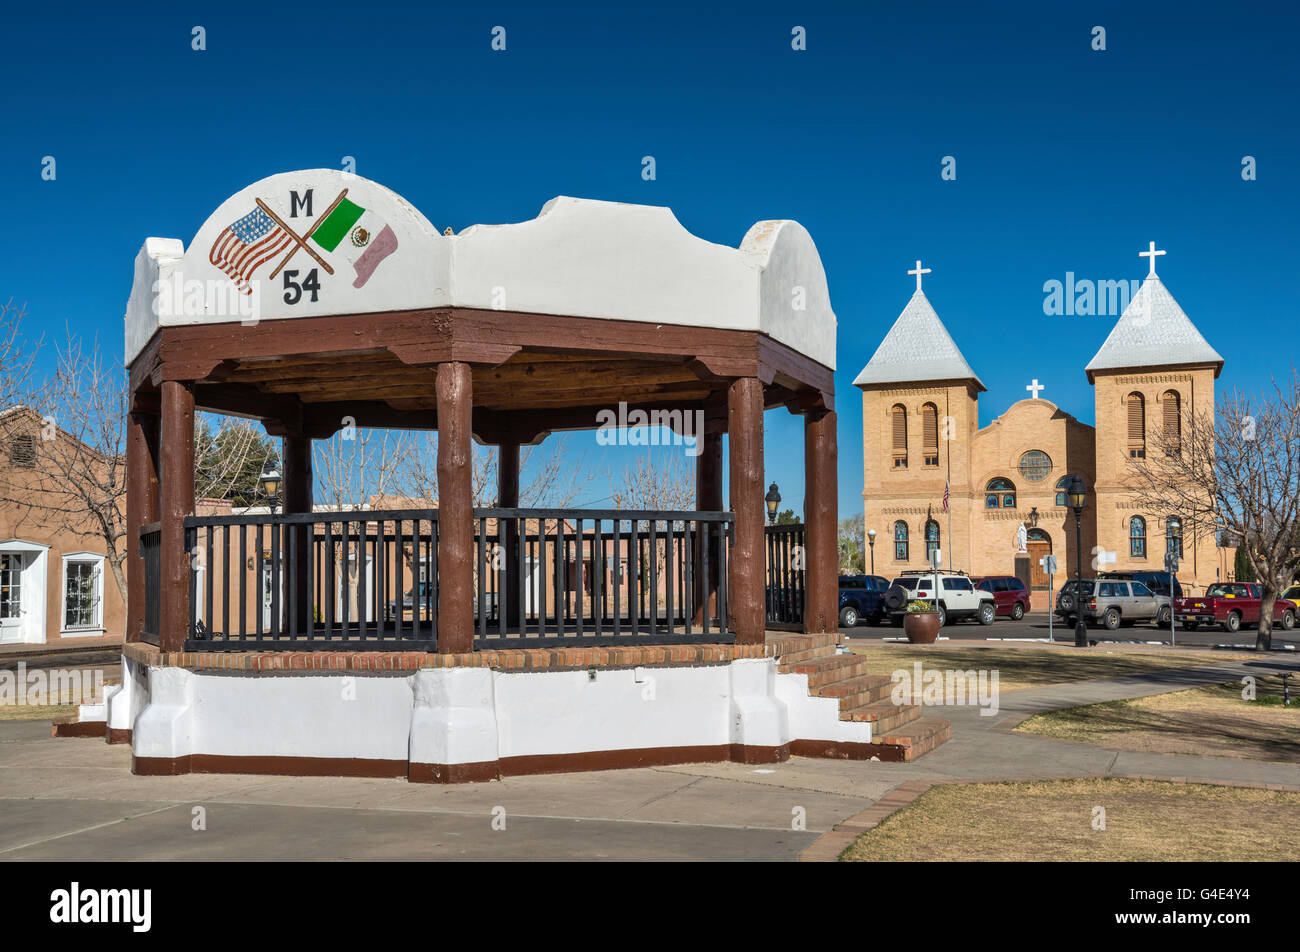 Bandstand, Basilica of San Albino in distance at Mesilla Plaza in town of Mesilla near Las Cruces, New Mexico, USA - Stock Image